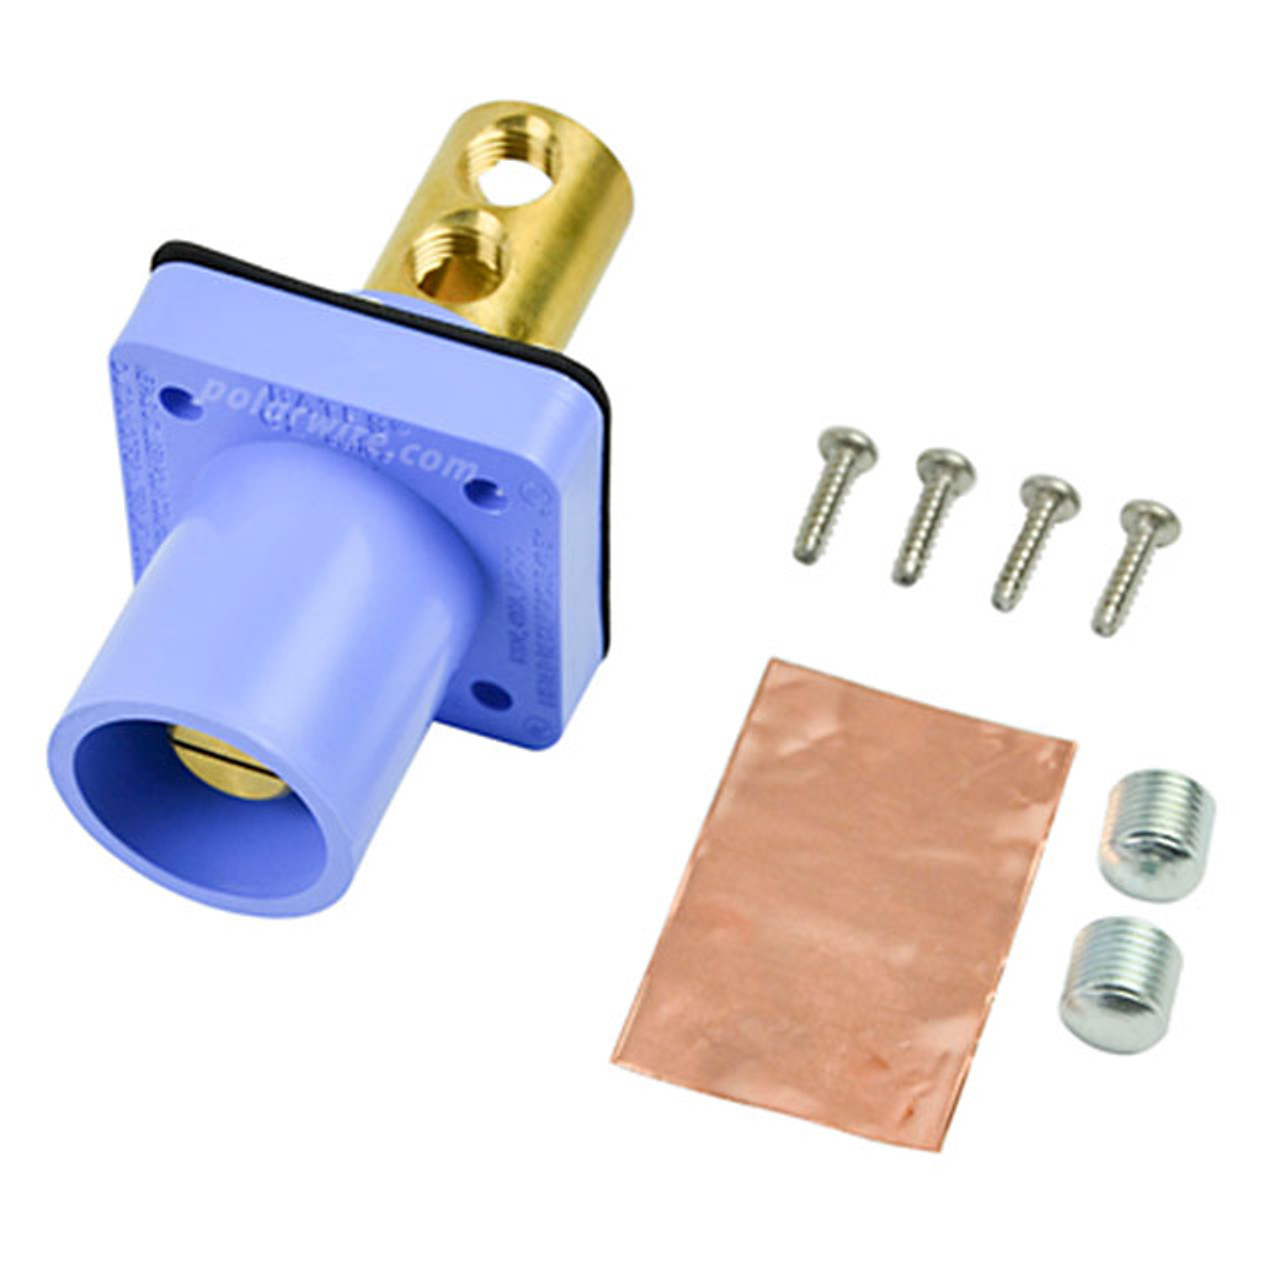 CAM LOCK 400A PANEL MALE BLUE SET SCREW 2/0-4/0